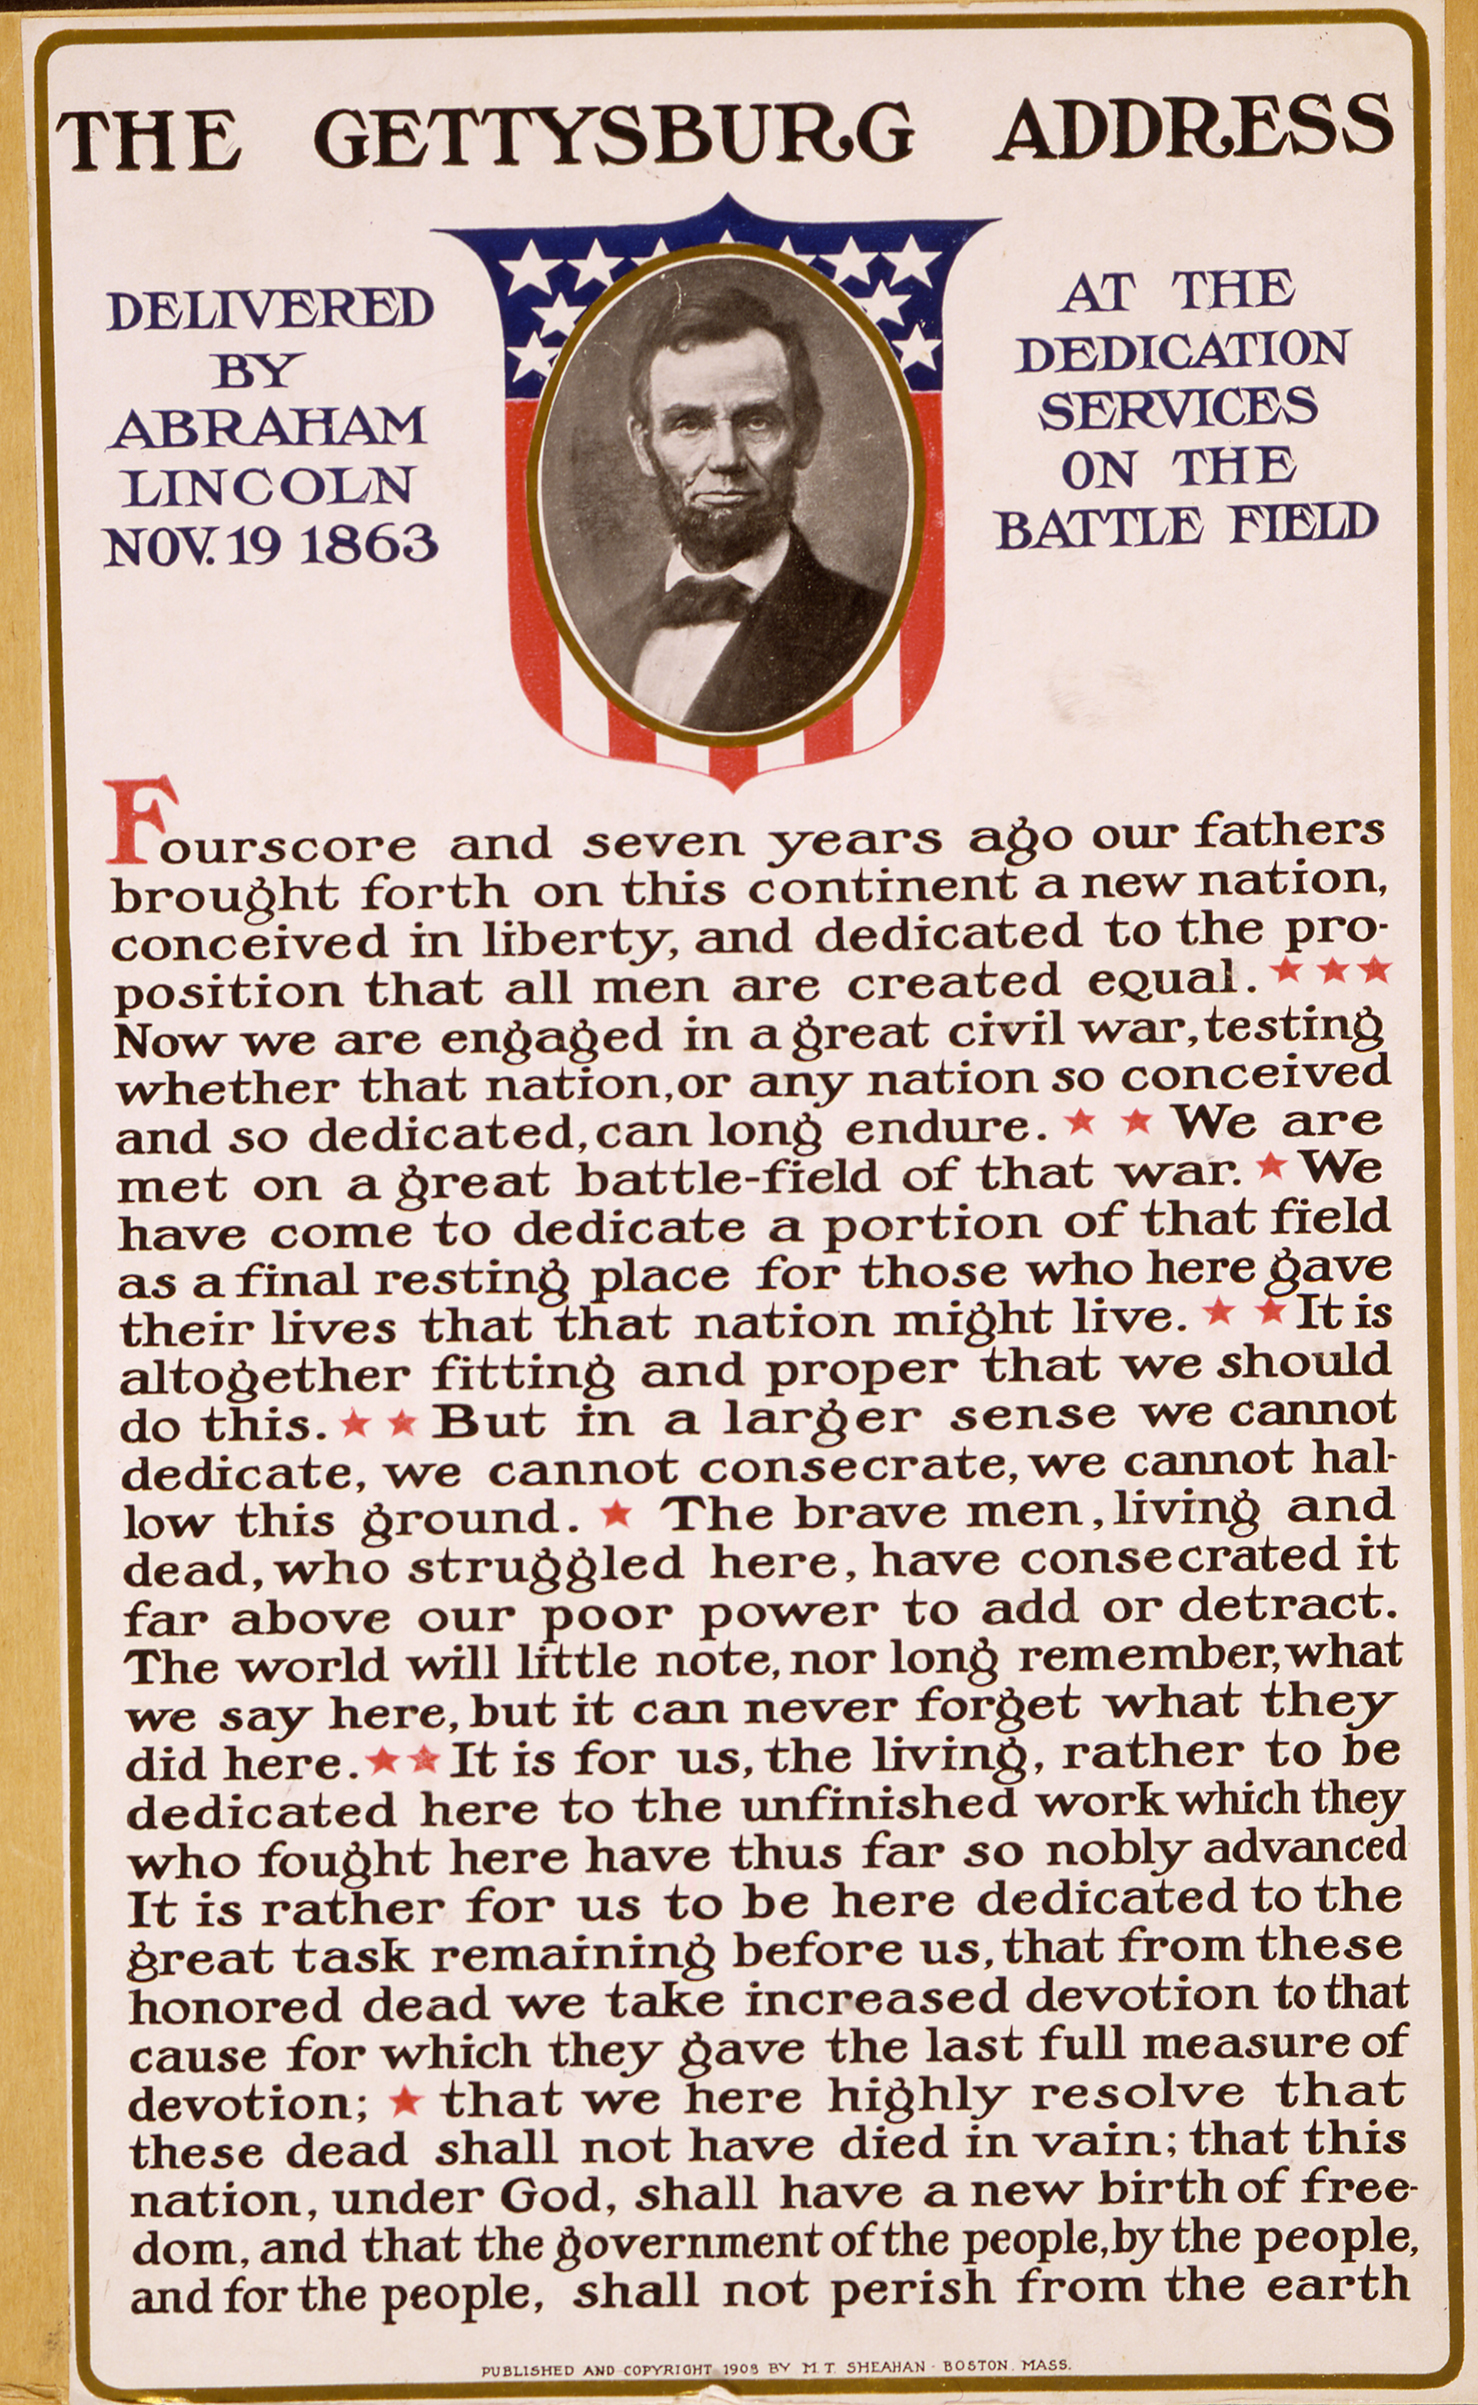 The Gettysburg address delivered by Abraham Lincoln Nov. 19, 1863 at the dedication services on the battlefield.